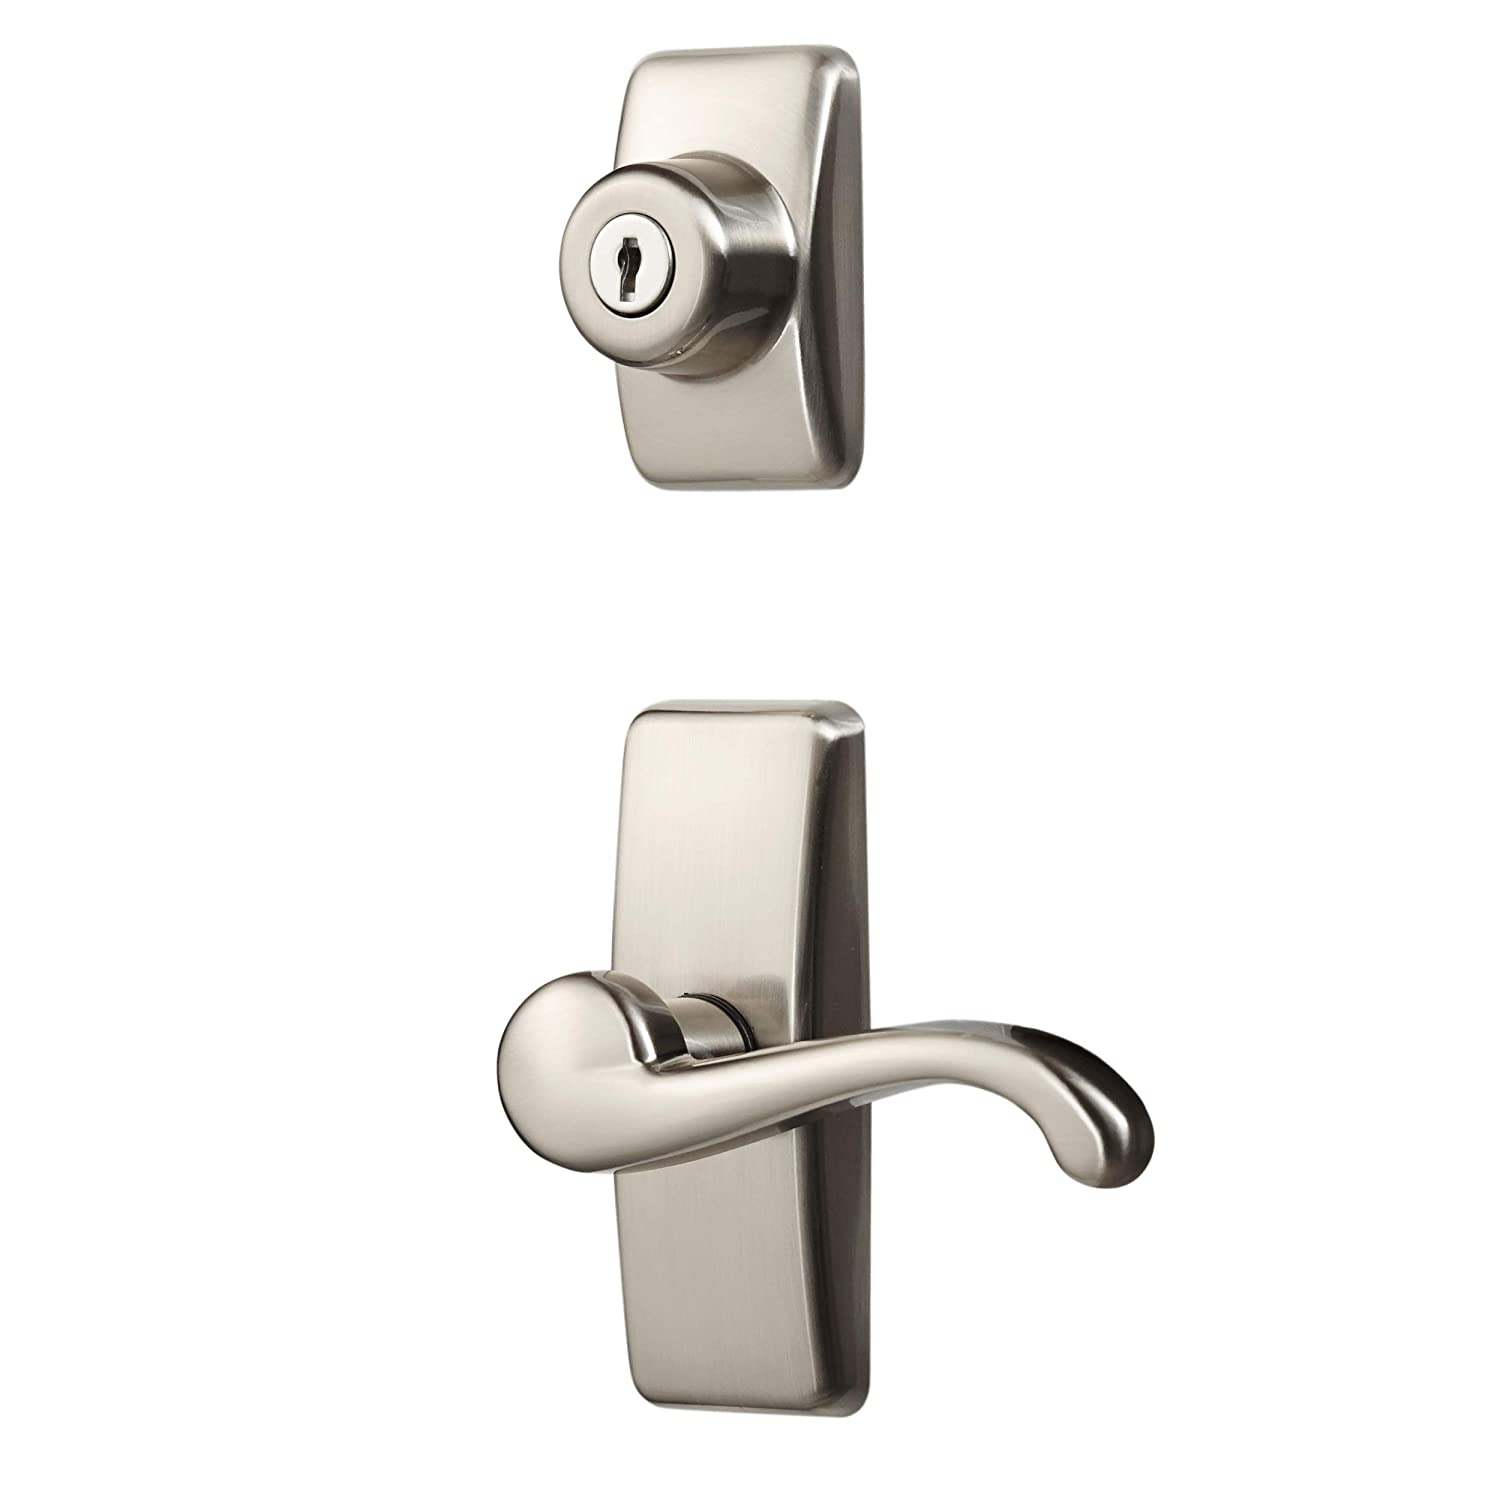 Ideal Security Inc. HK01-I-099 GL Lever Set for Storm and Screen Doors With Keyed Deadbolt Satin Nickel